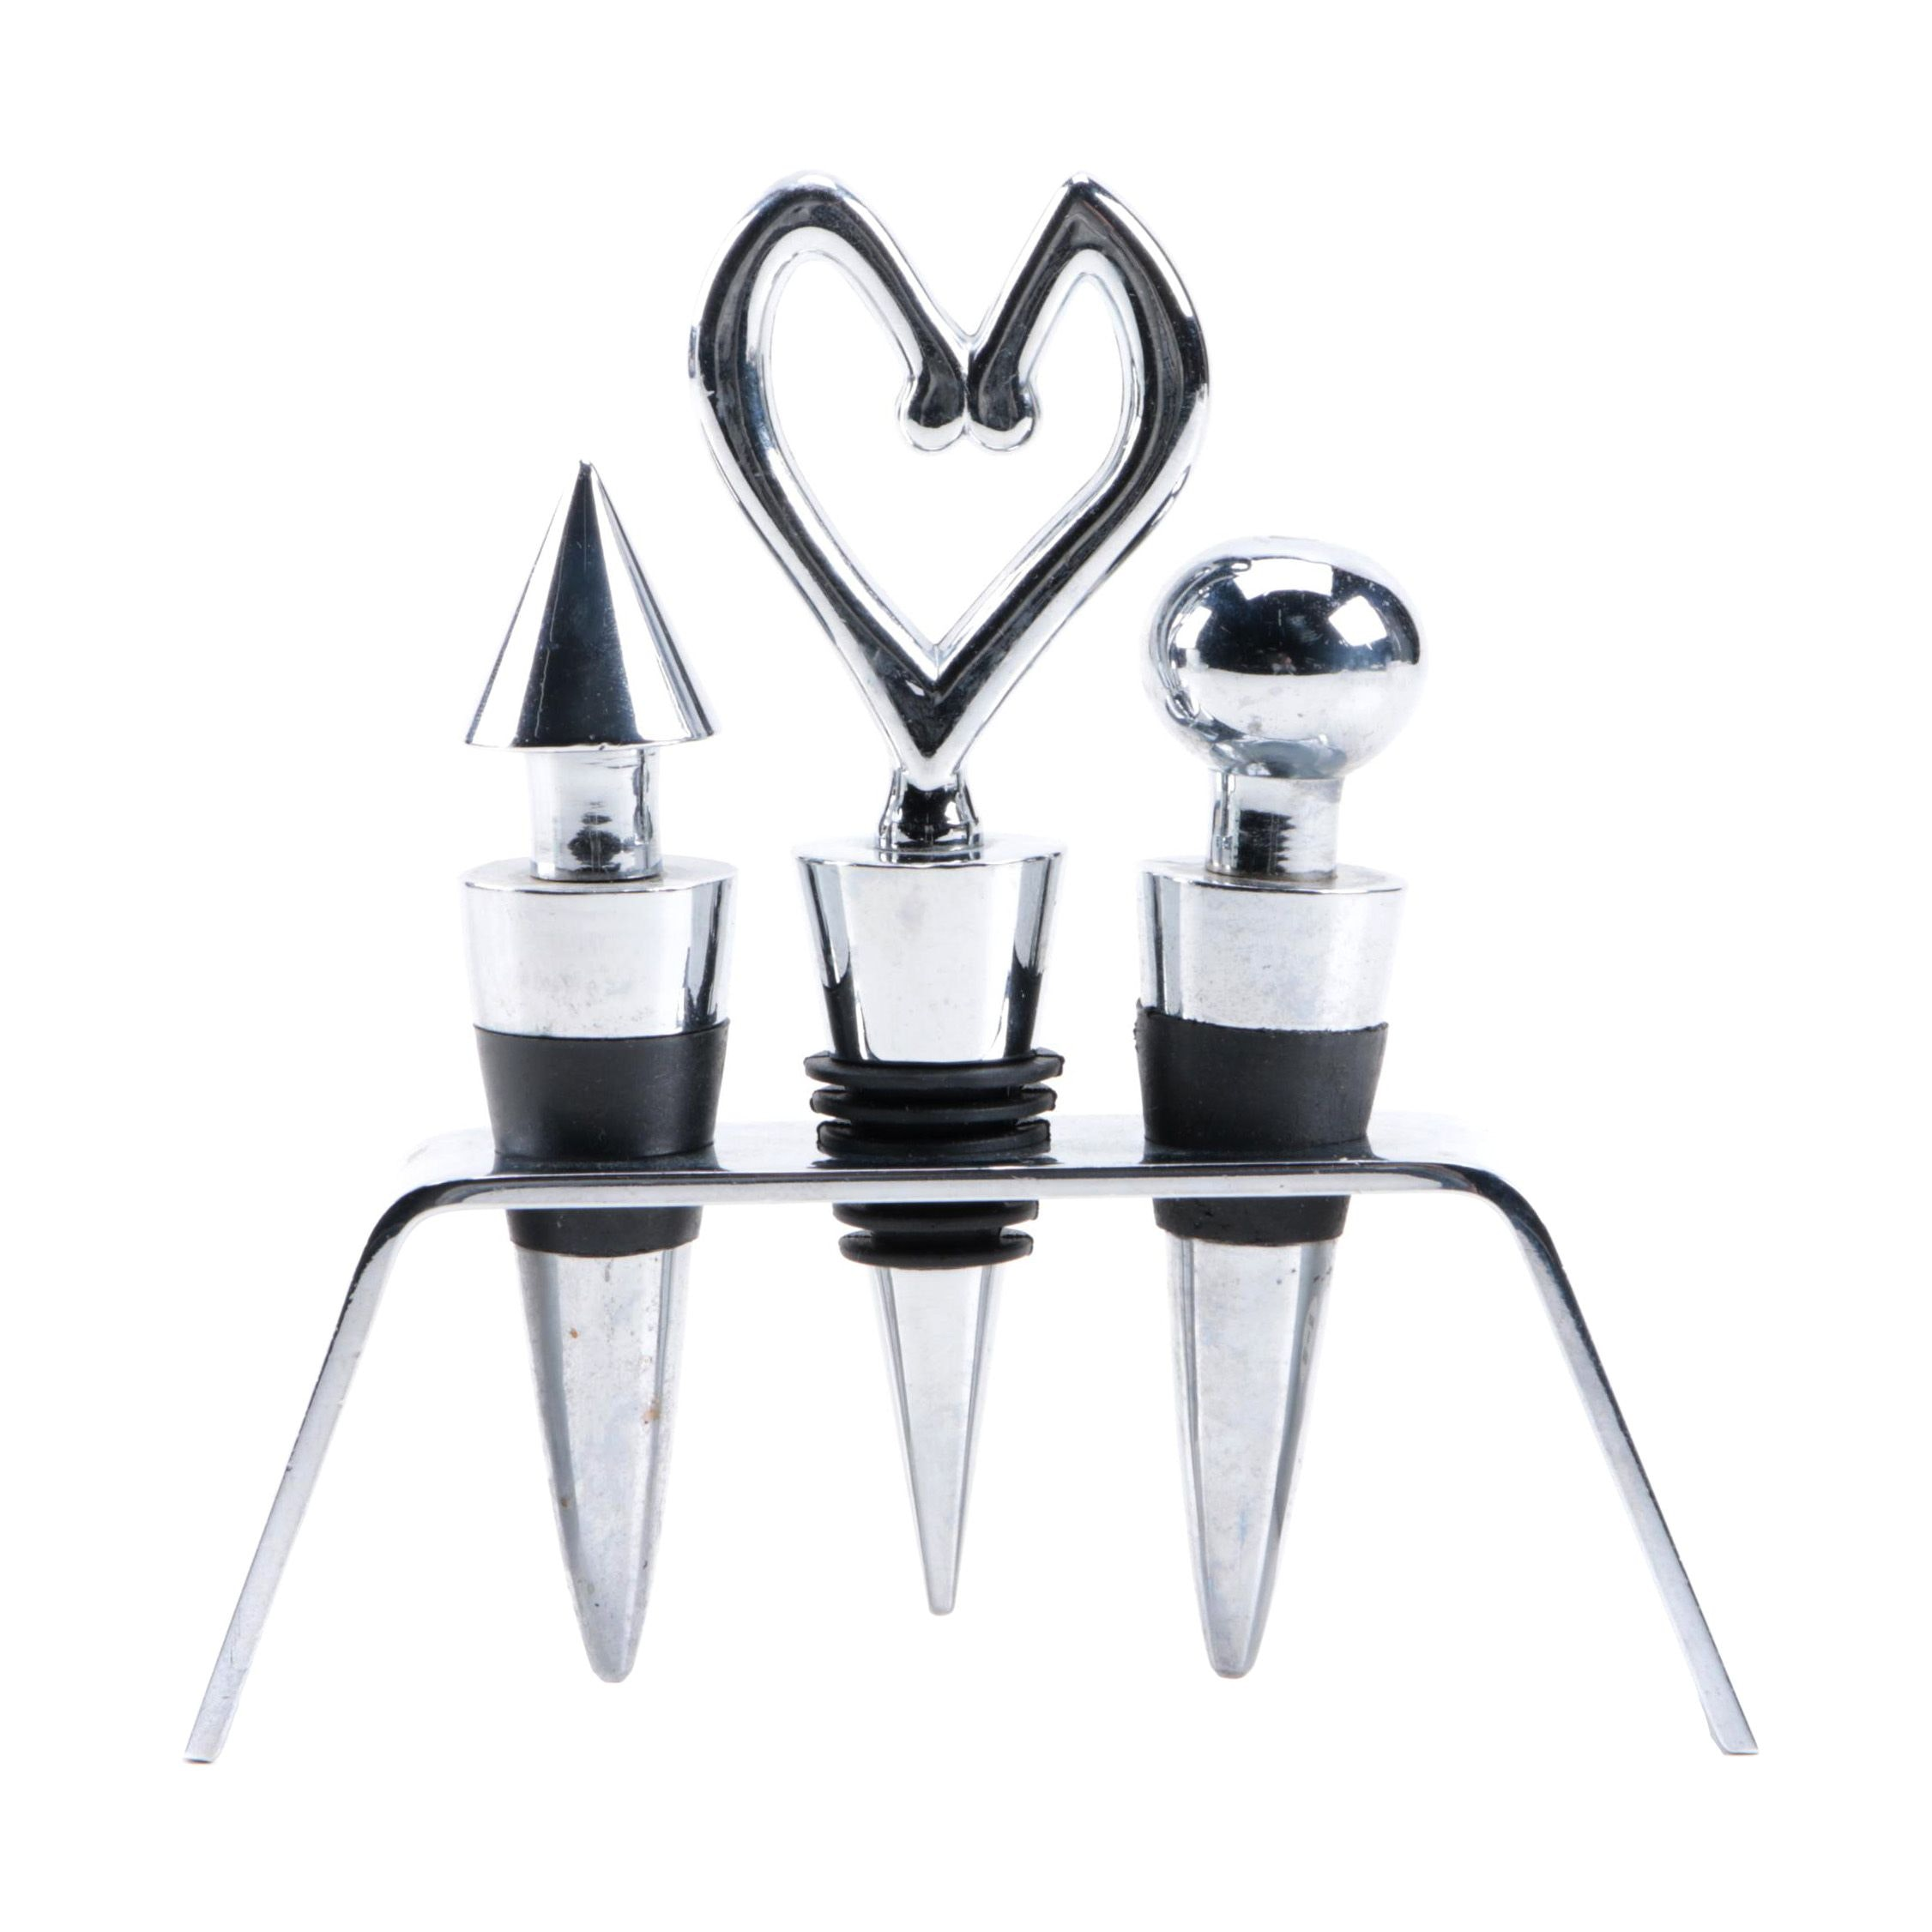 Wine Bottle Stopper Set